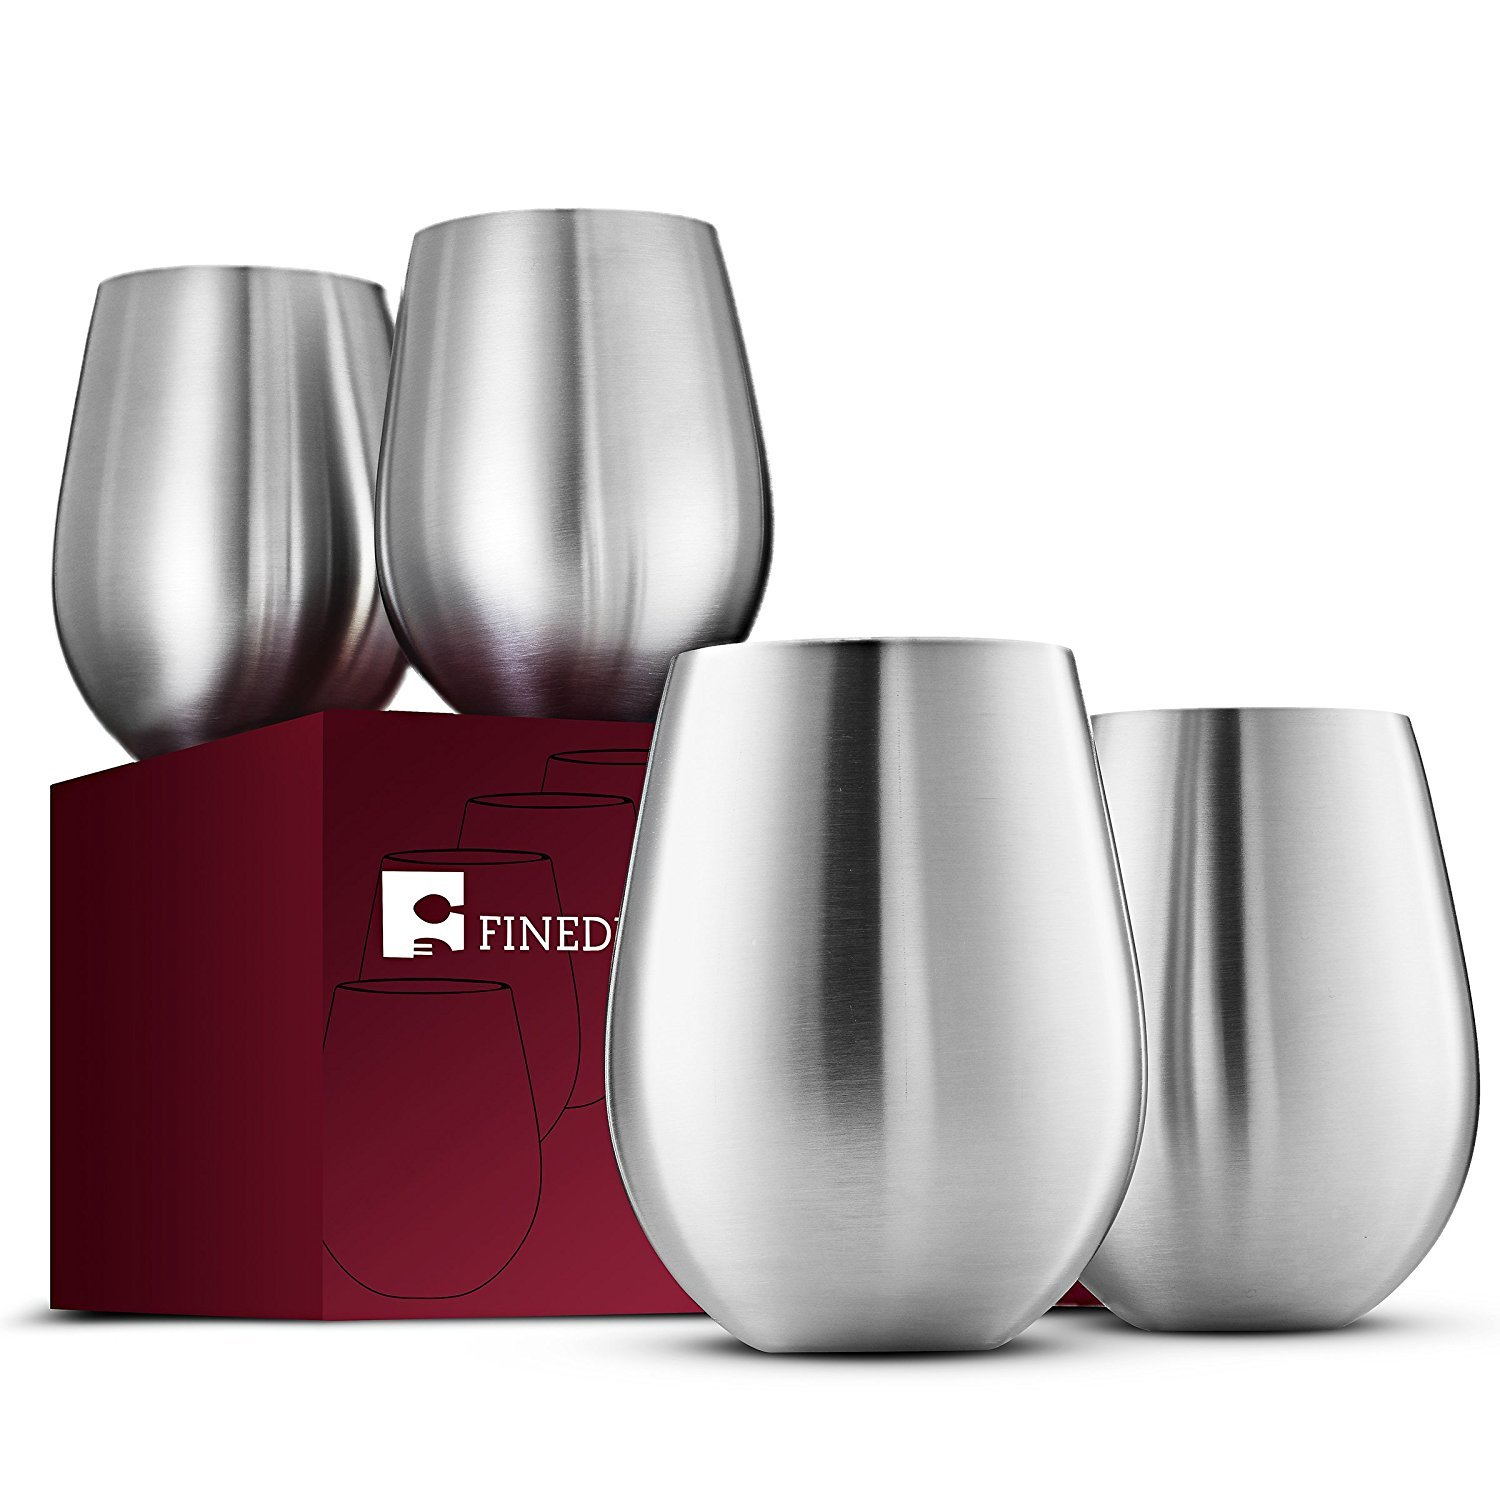 Stainless Steel Wine Glasses - Set of 4 Large & Elegant 18 Oz. Premium Grade 18/8 Stainless Steel Red & White Stemless Wine Glasses, Unbreakable, Portable Wine Tumbler, for Outdoor Events, Picnics by FINEDINE